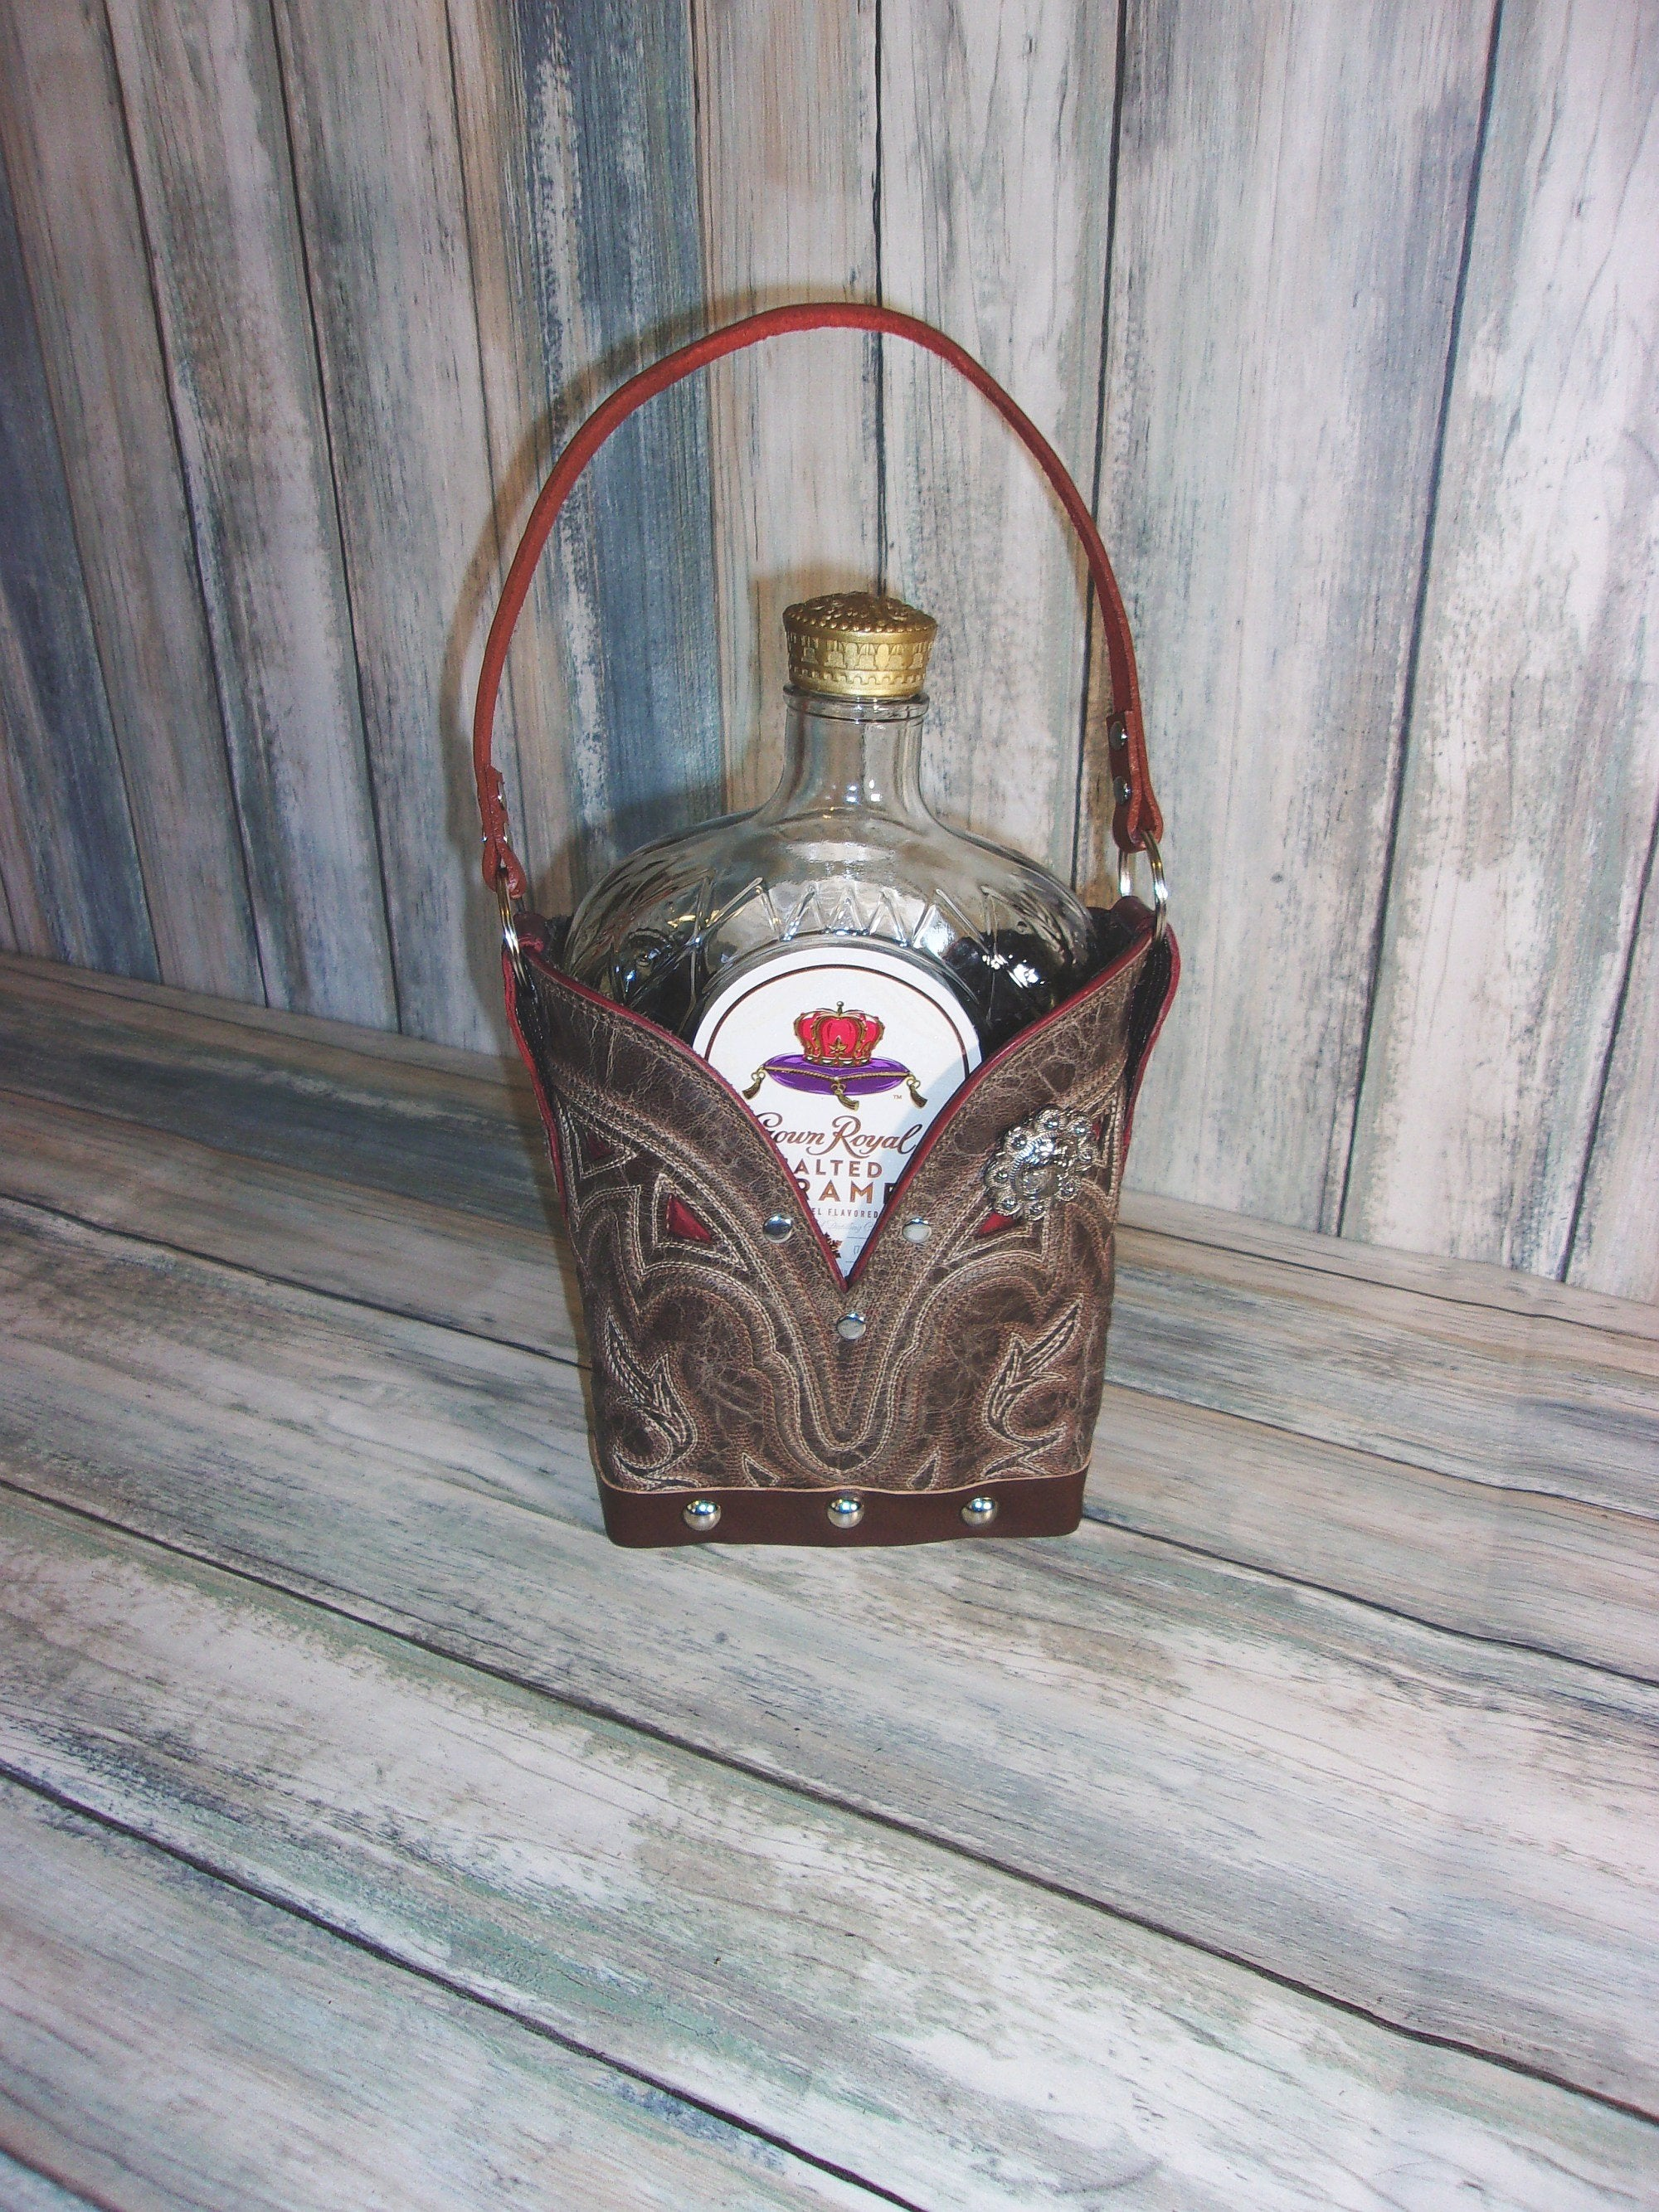 Leather Whiskey Tote CR81.2 - Distinctive Western Handbags, Purses and Totes